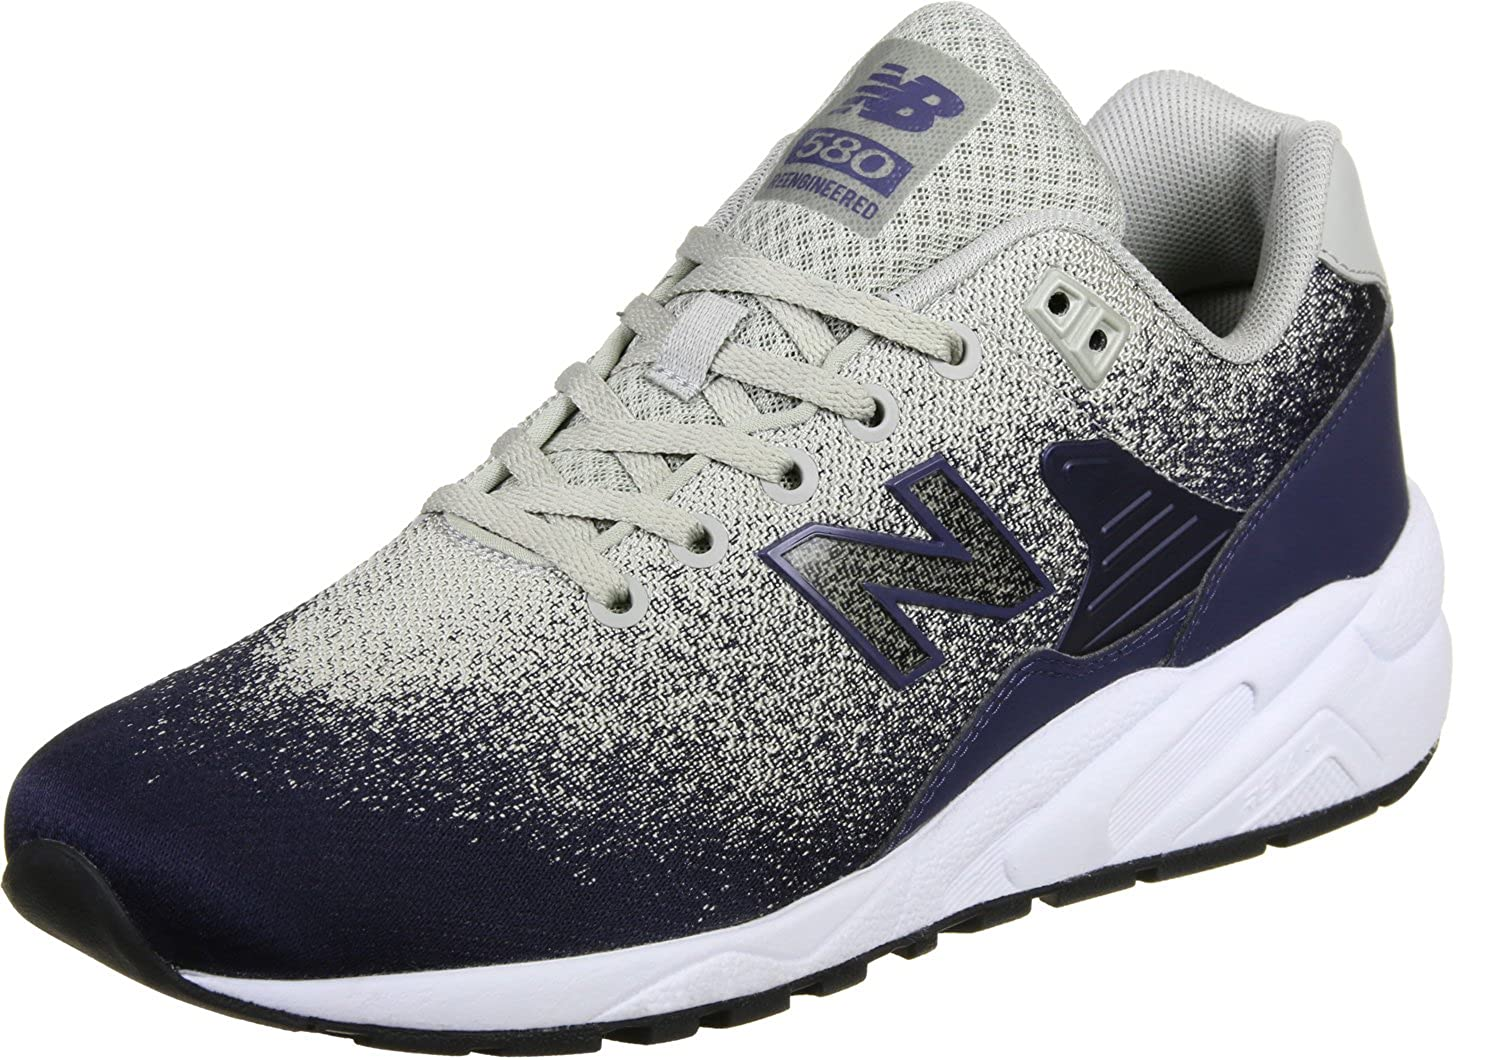 new arrival 6b8a4 7eba1 Amazon.com | New Balance 580 Re-Engineered Athletic Men's ...